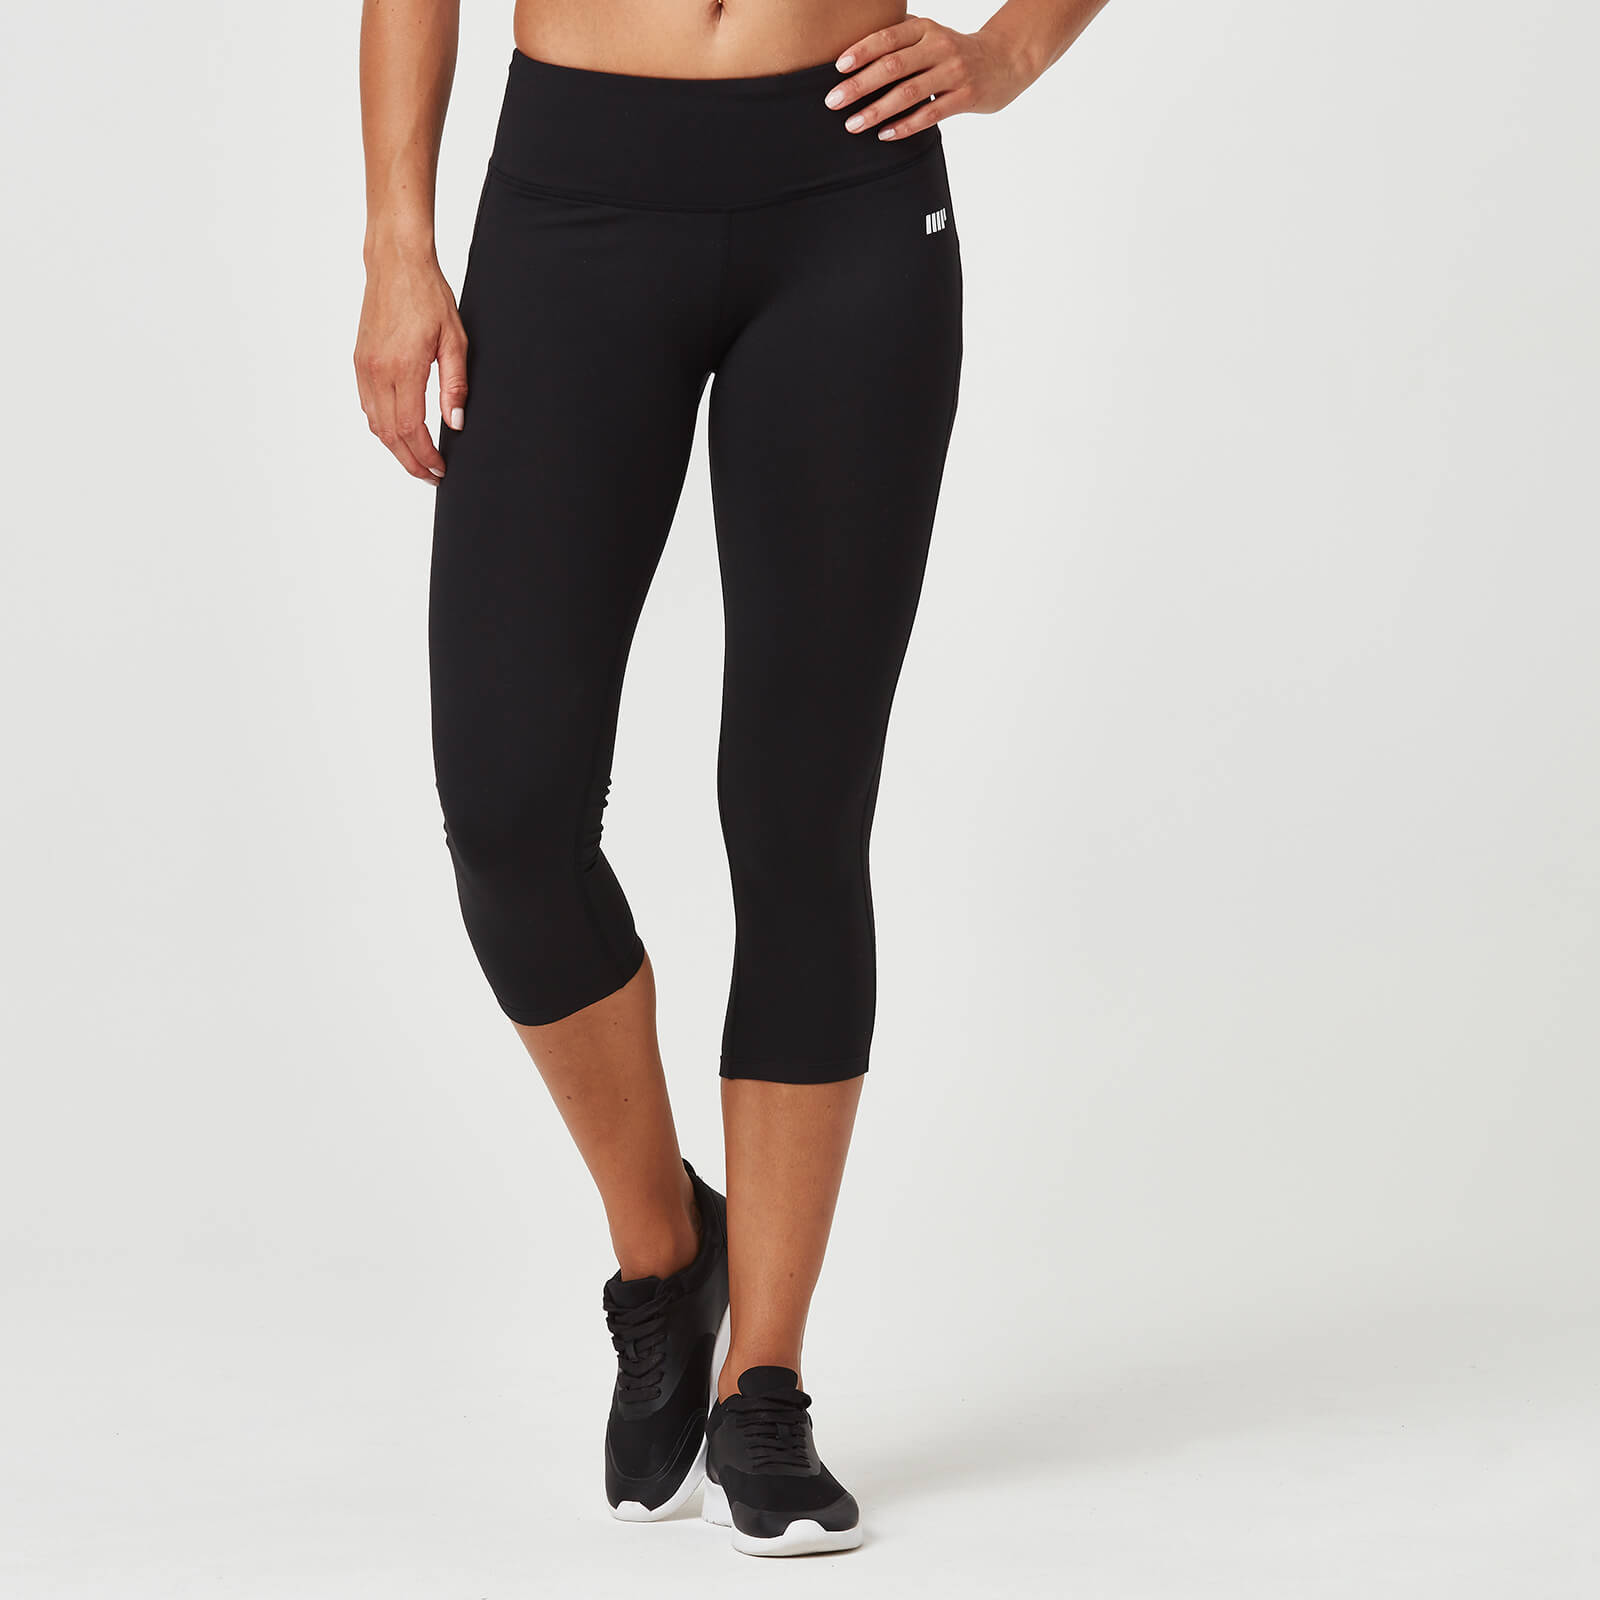 Classic Heartbeat 7/8 Leggings - Black - XS